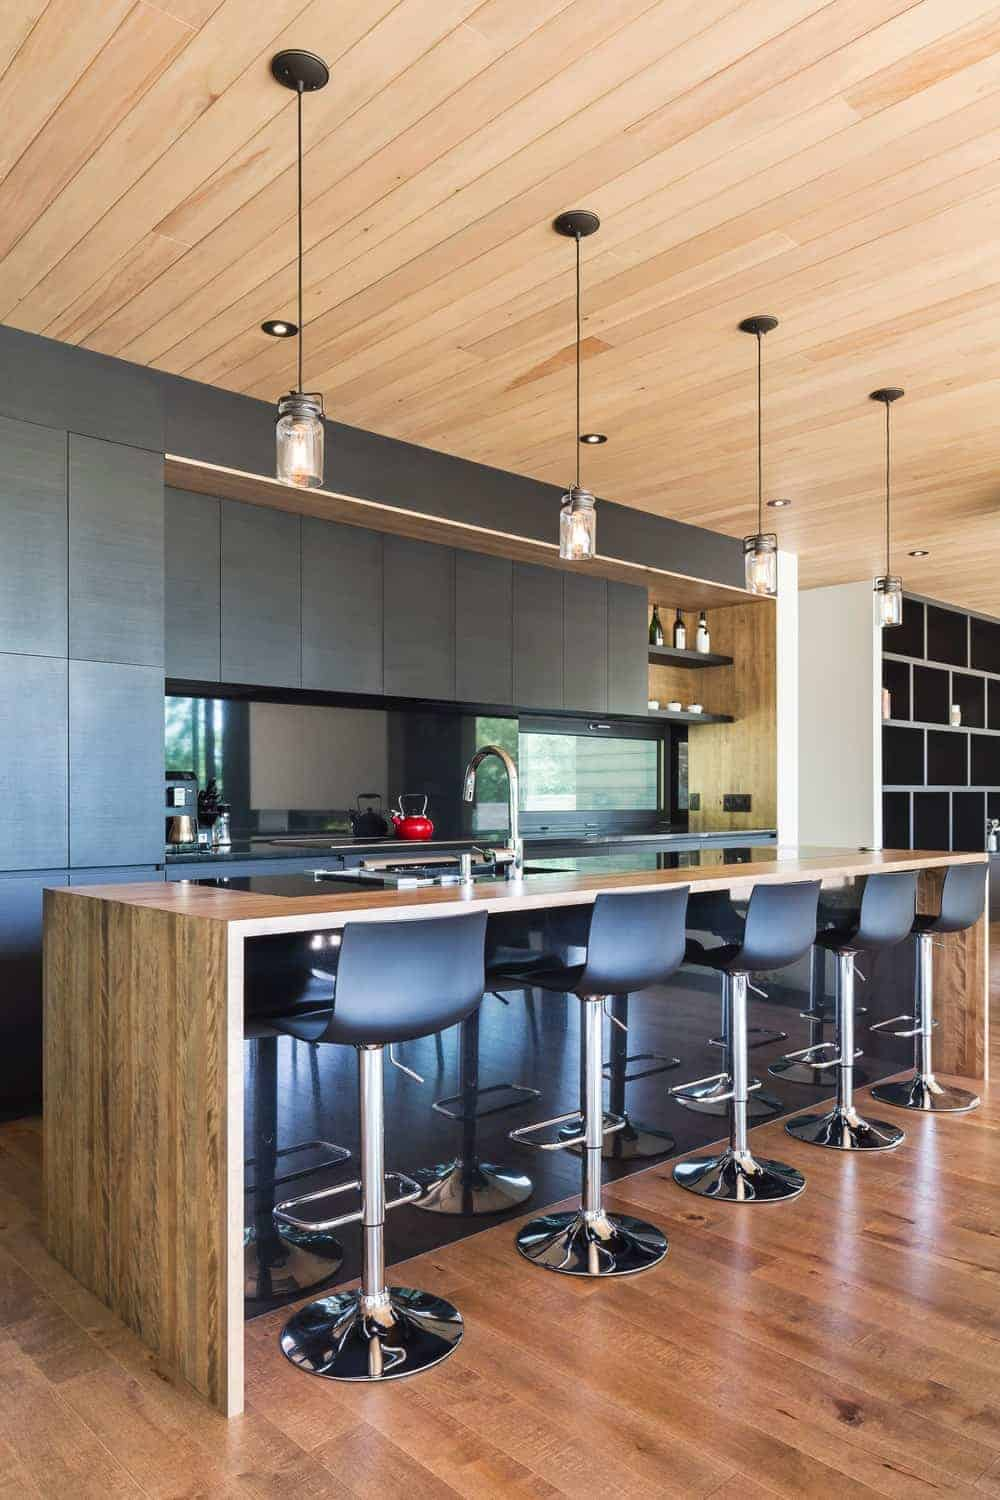 This kitchen boasts a wooden ceiling and hardwood flooring along with an island featuring a wooden countertop and has space for a breakfast bar.